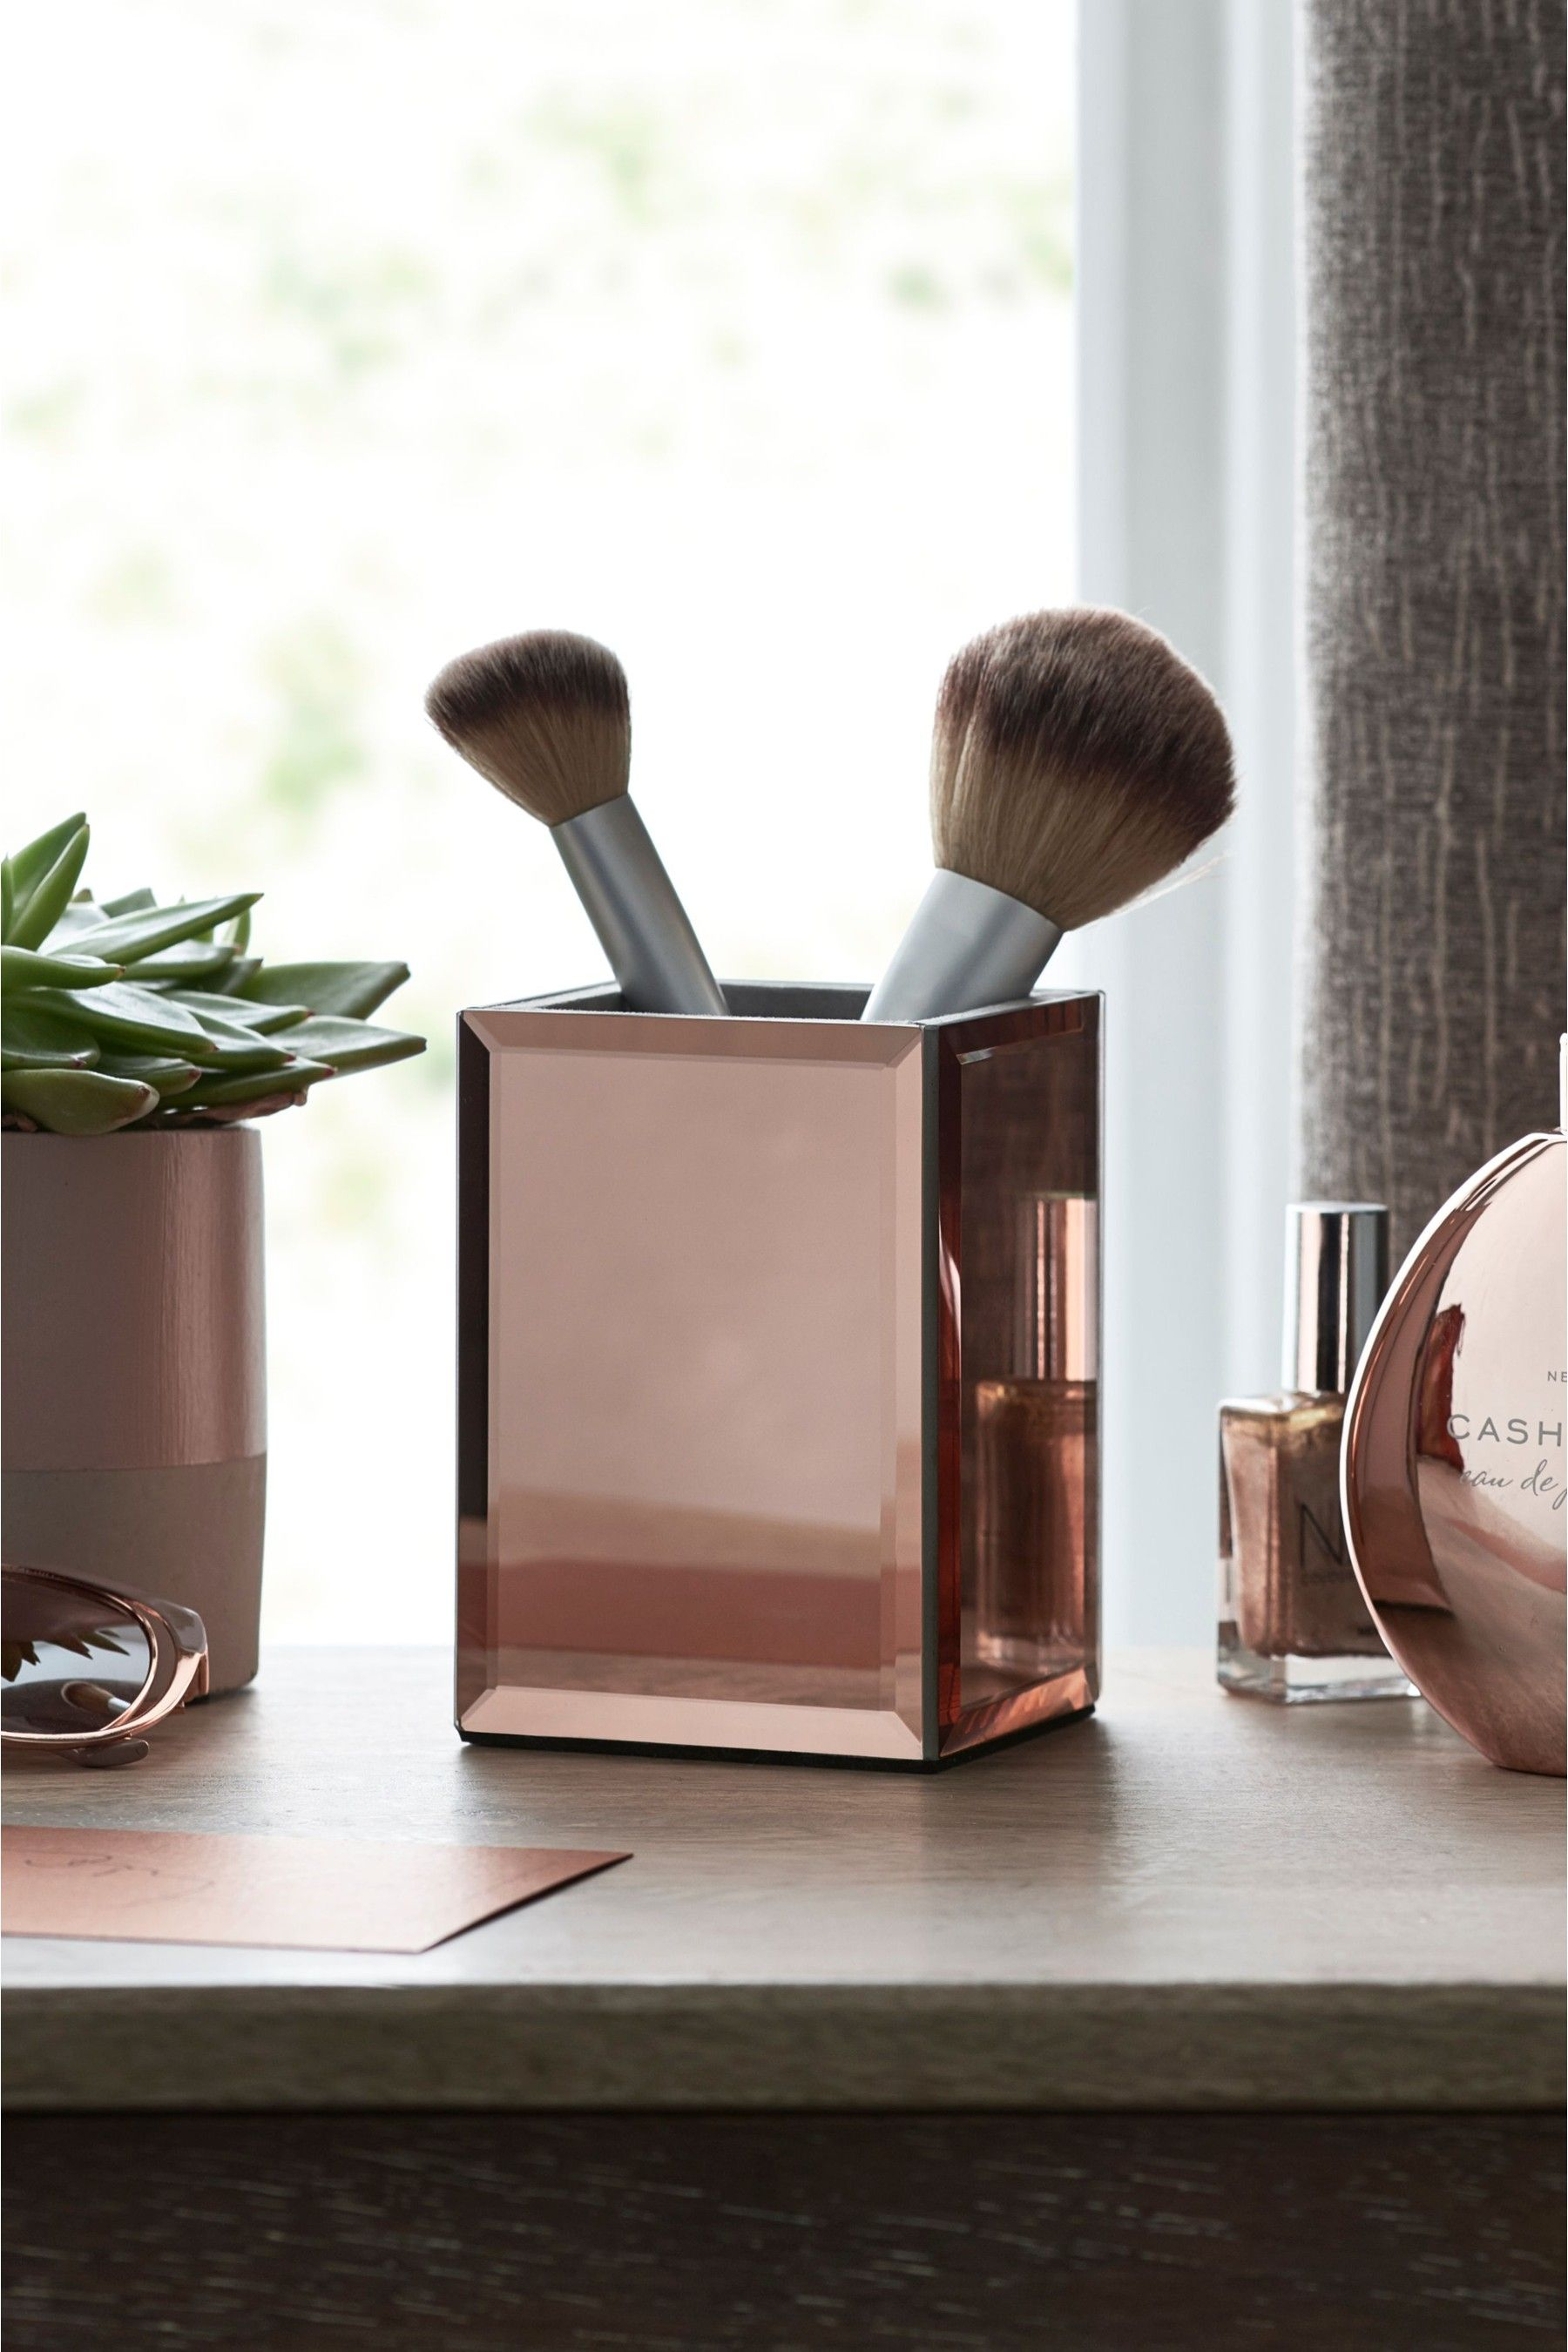 Next Rose Gold Pot Pink Rose gold and grey bedroom